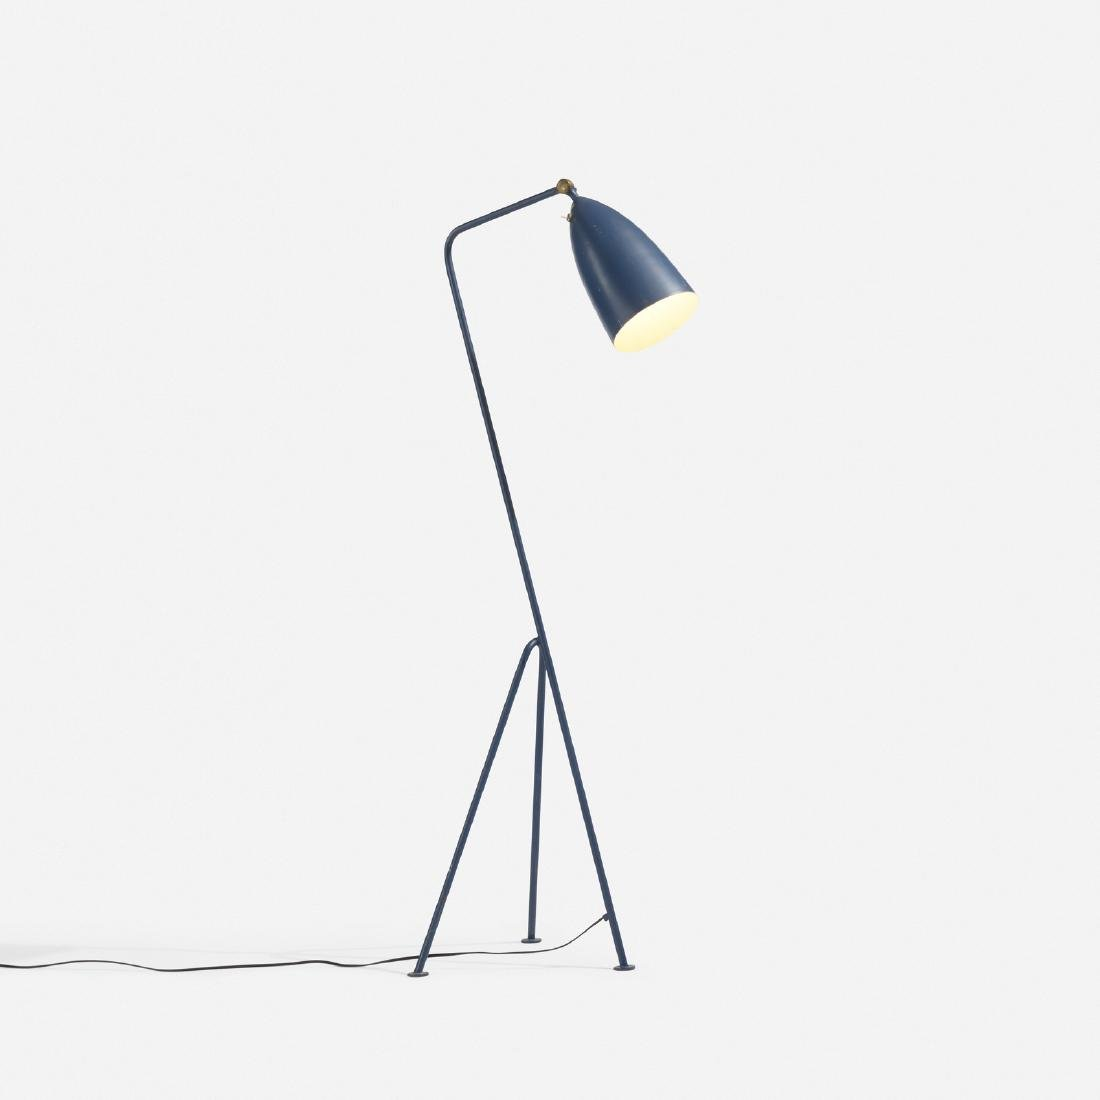 Greta Magnusson Grossman, Grasshopper floor lamp